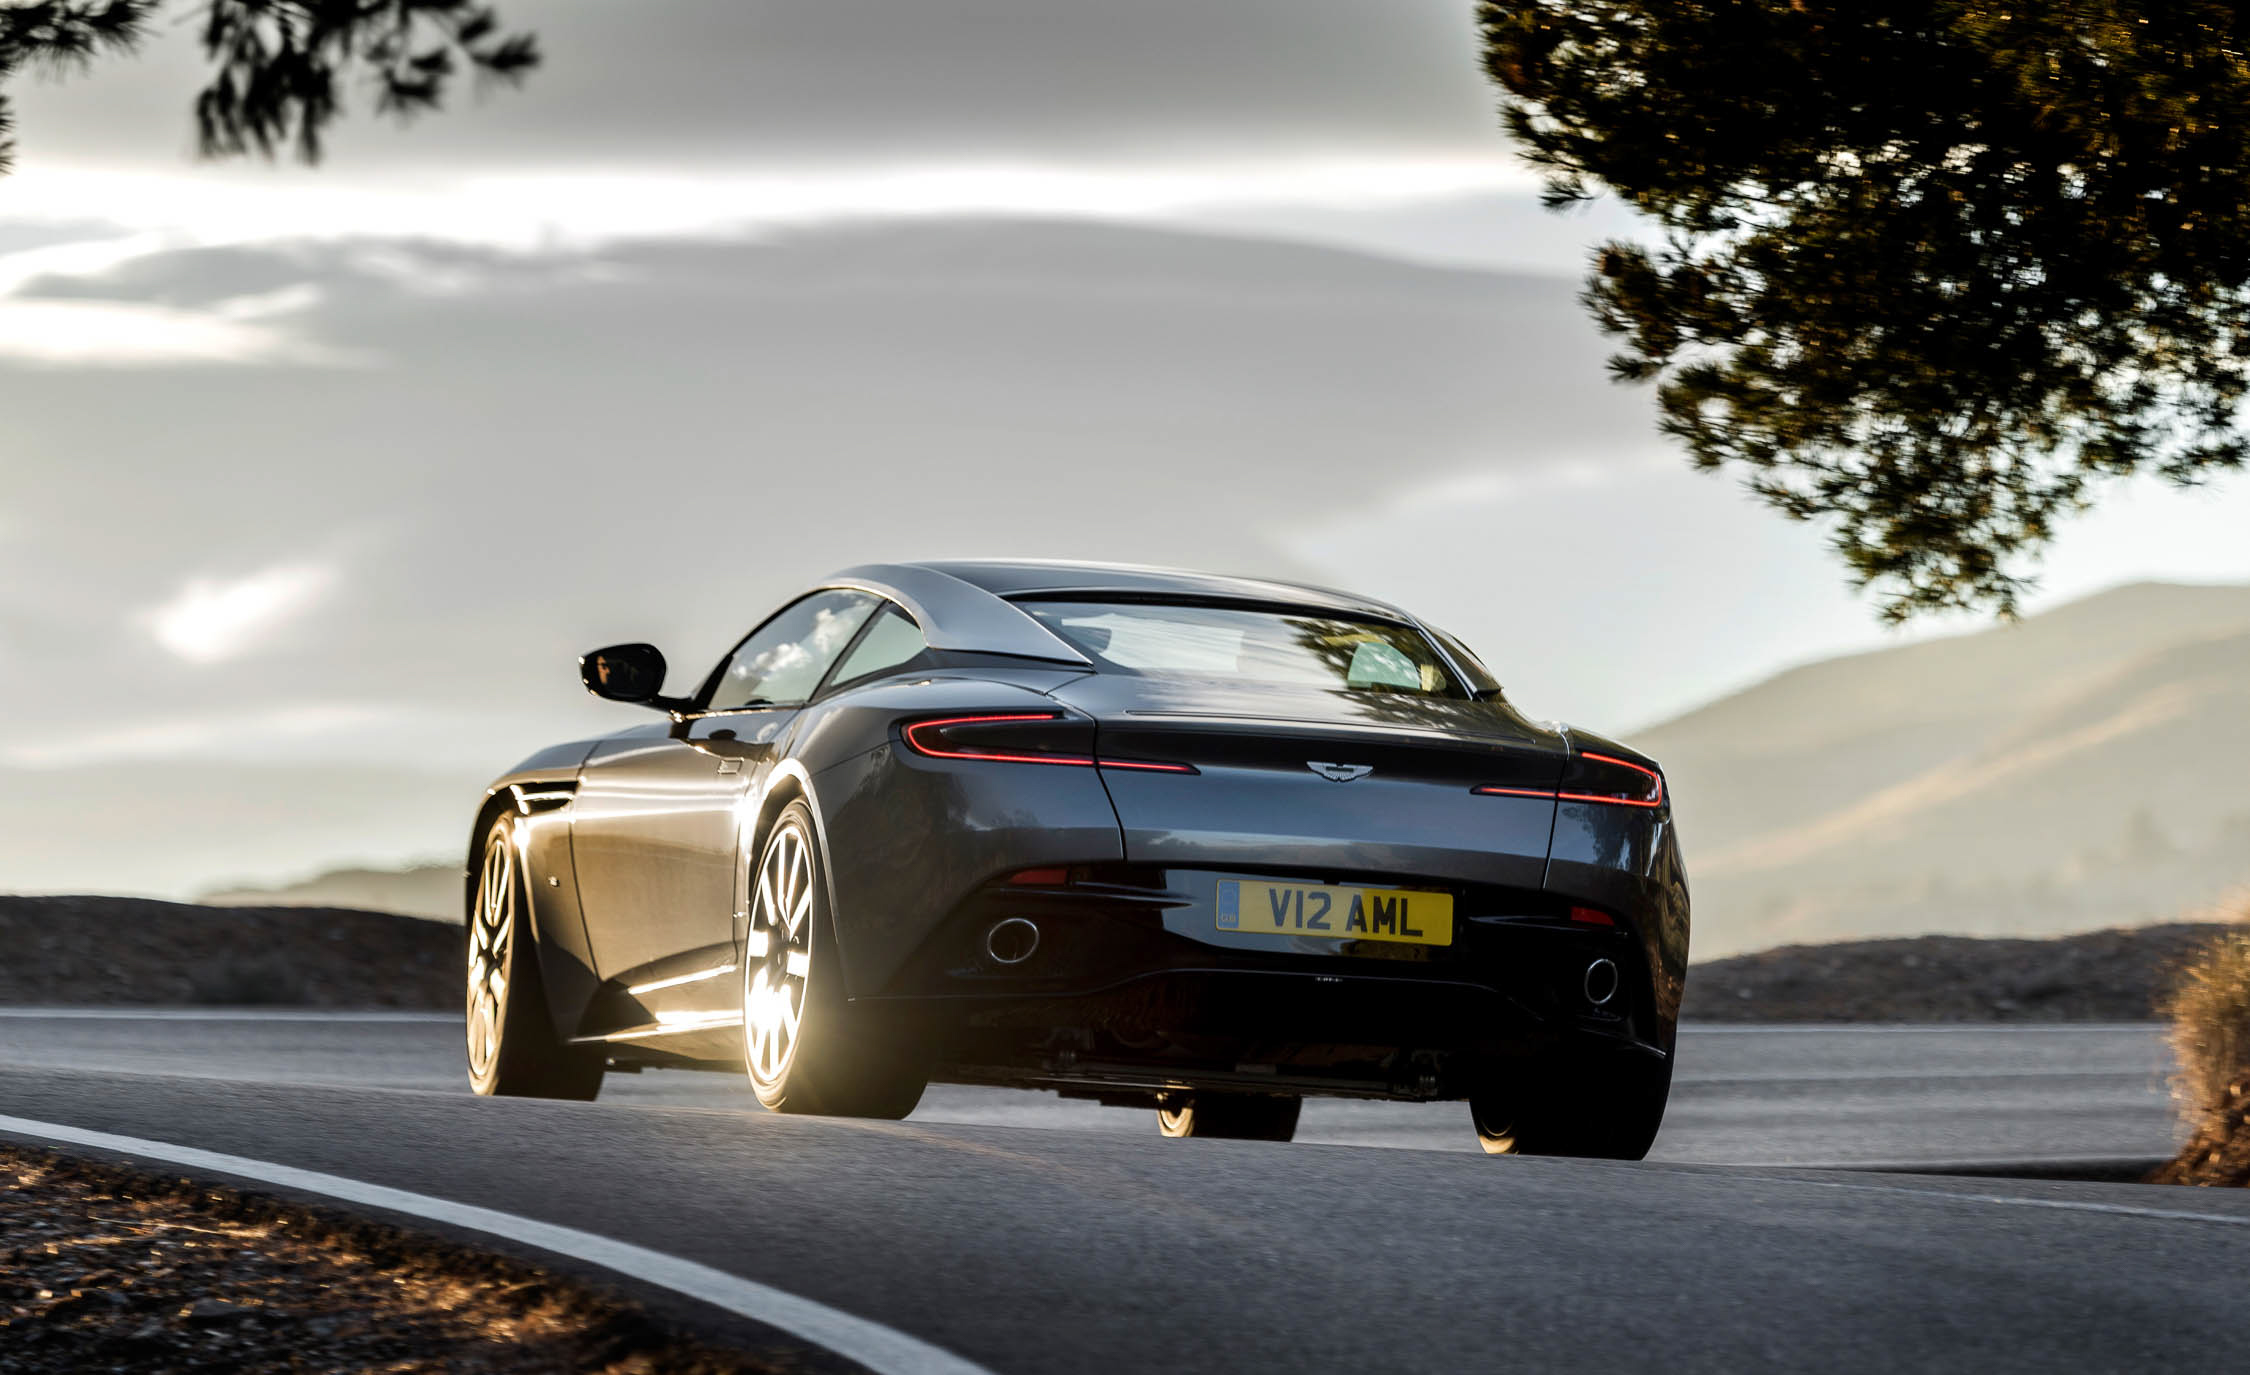 2017 Aston Martin Db11 Exterior Rear Side (View 17 of 22)